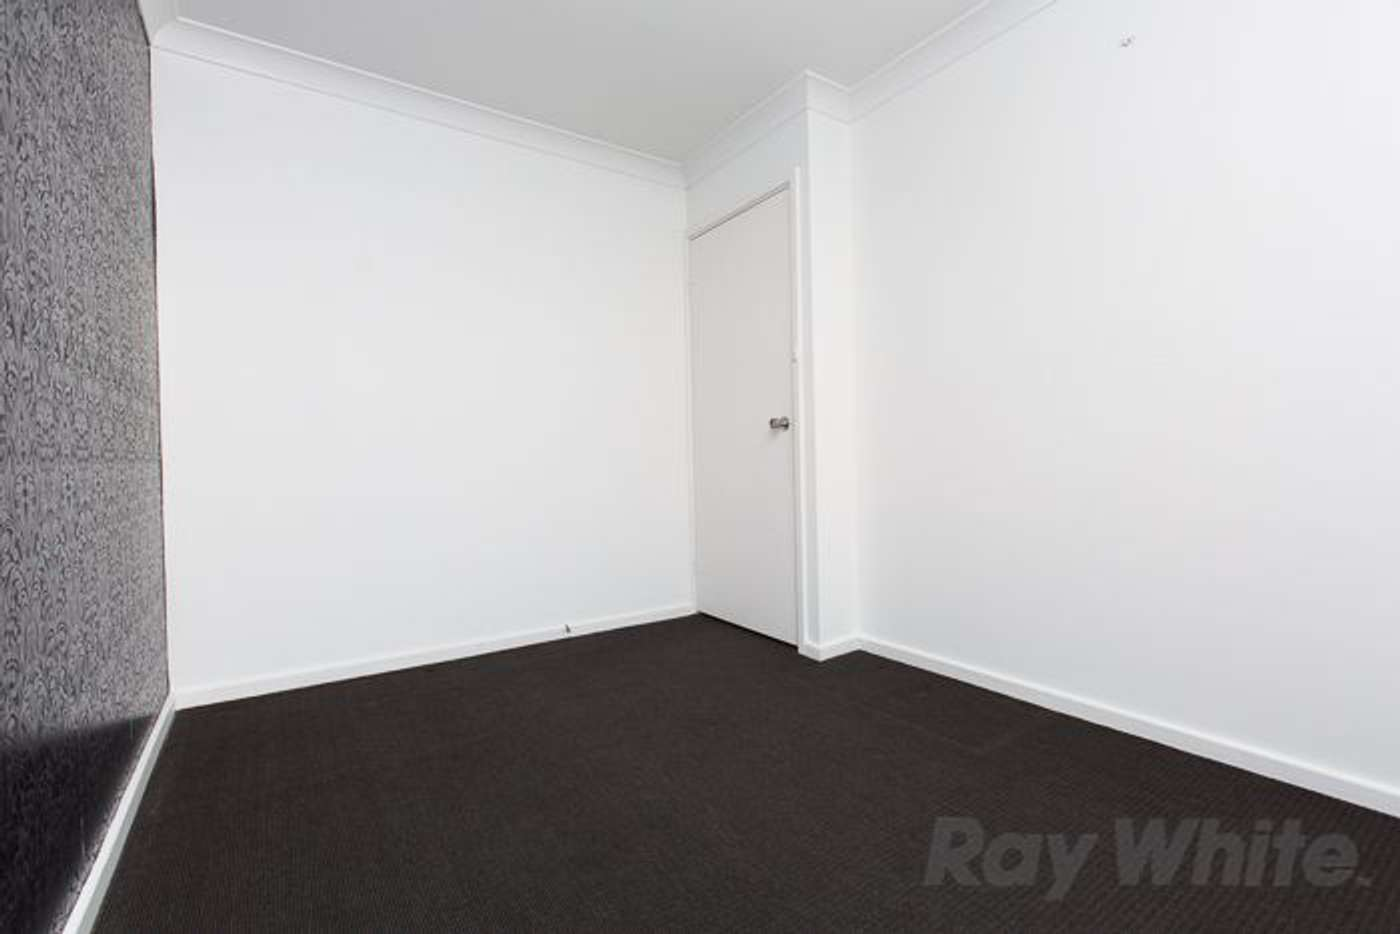 Seventh view of Homely townhouse listing, 6/191 Darby Street, Cooks Hill NSW 2300